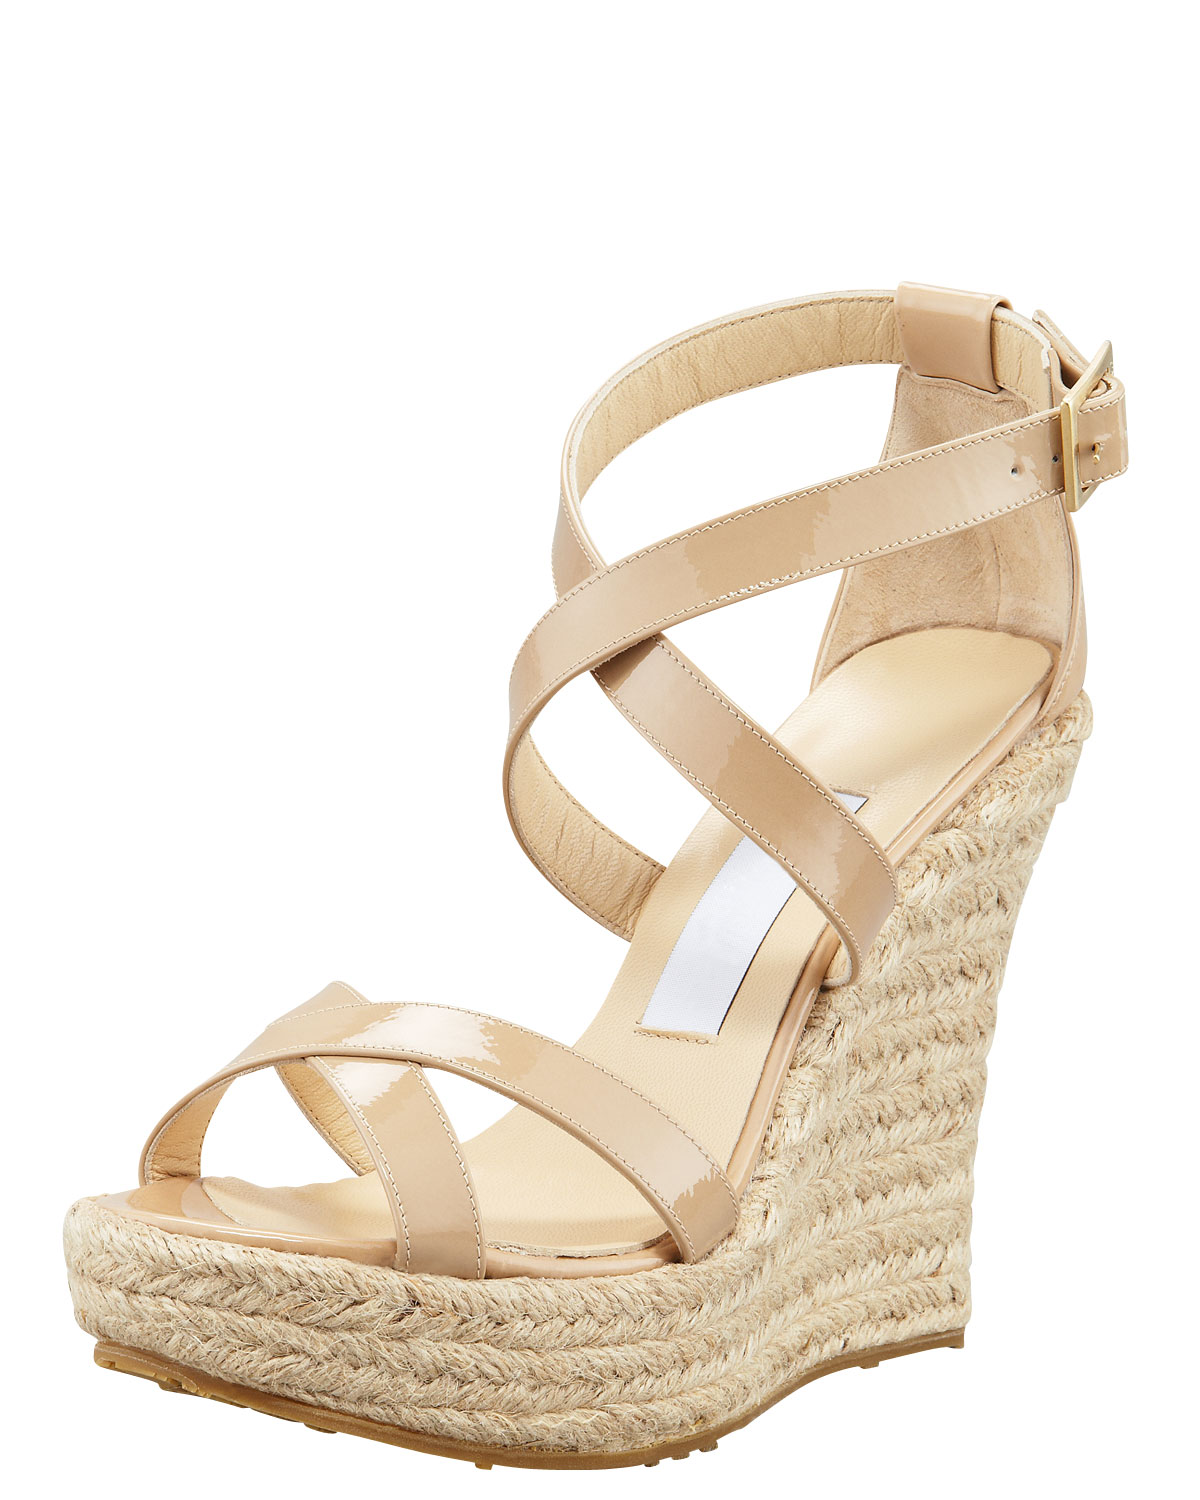 642b338bed5 Lyst - Jimmy Choo Porto Patent Espadrille Wedge Nude in Natural